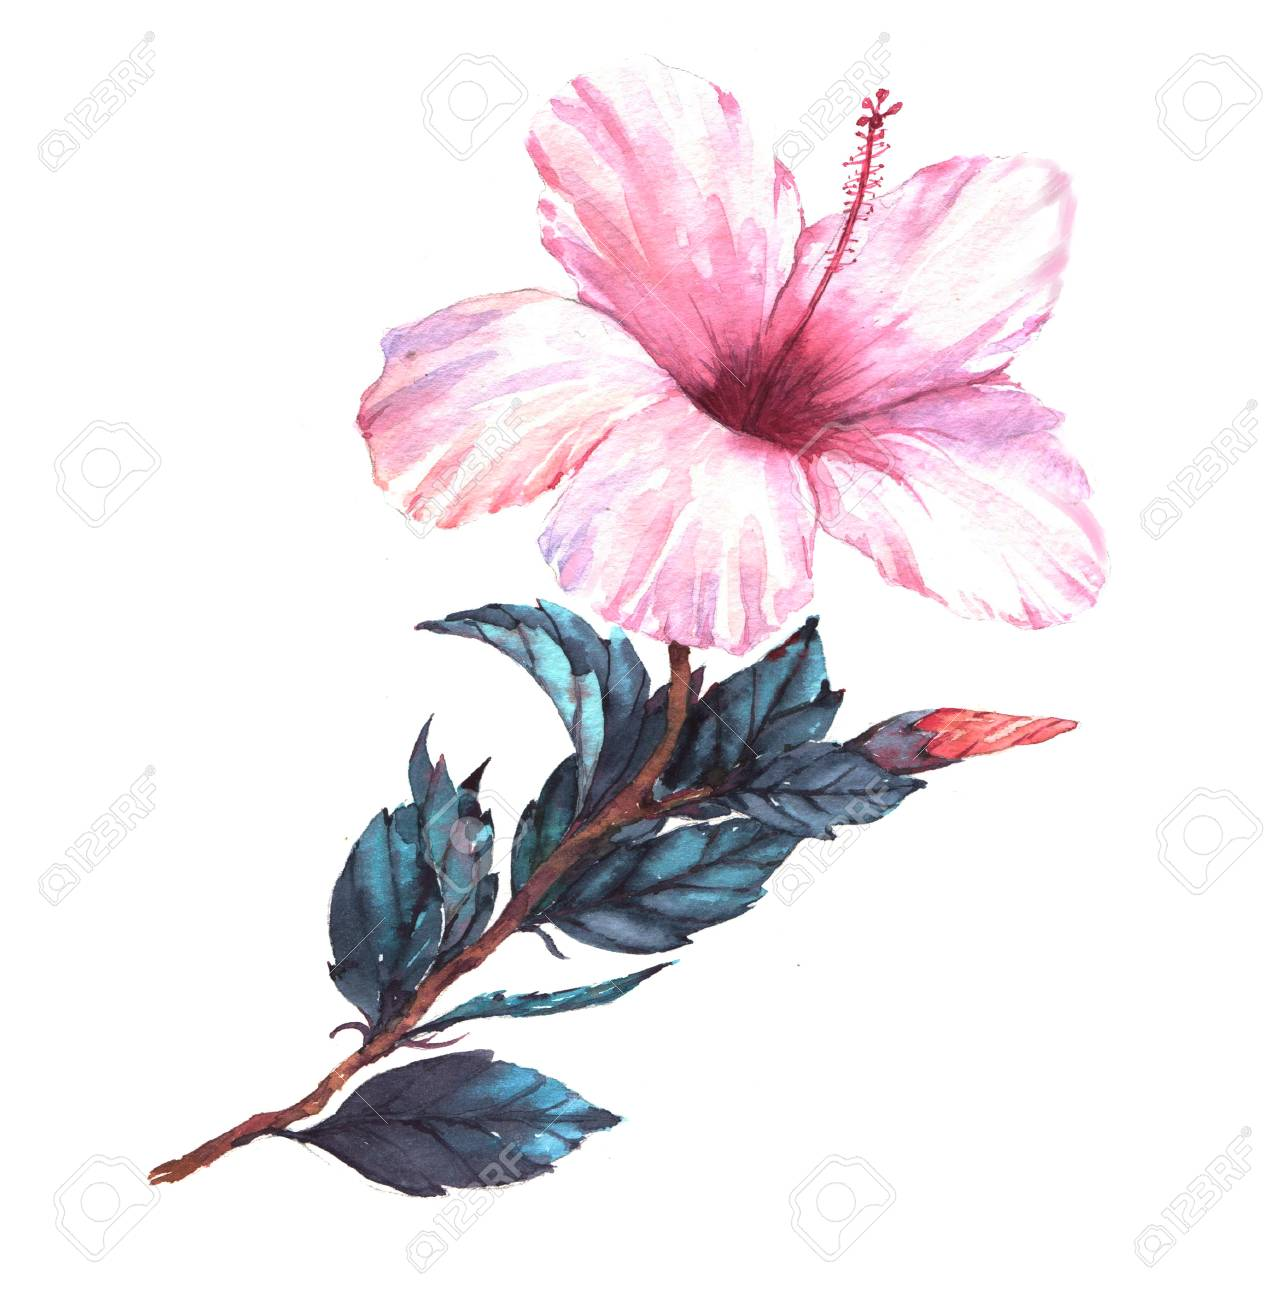 Hand Drawn Watercolor Floral Illustration Of The Tender White